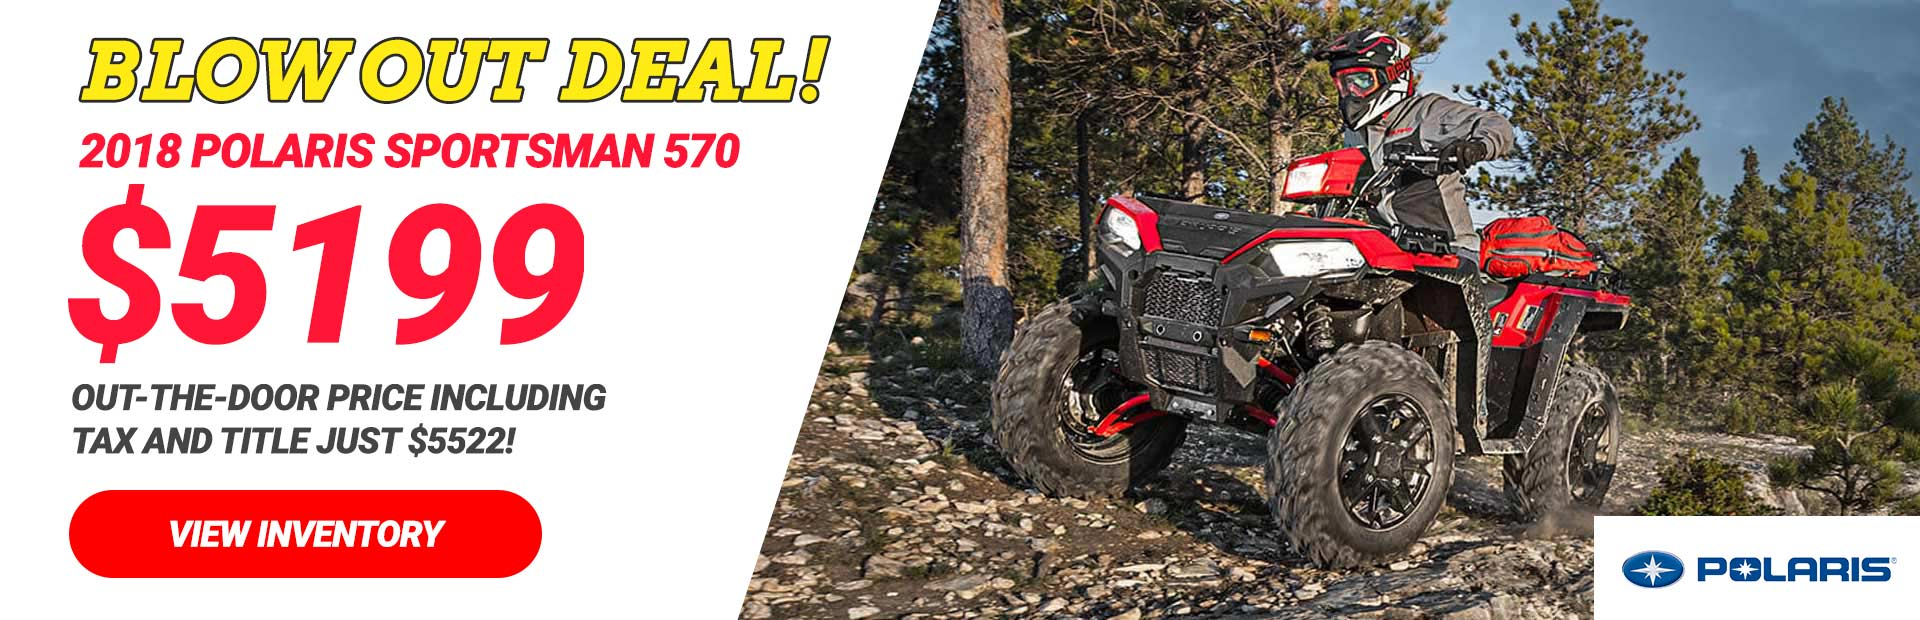 2018 Polaris ATVs: Click here to view our inventory.